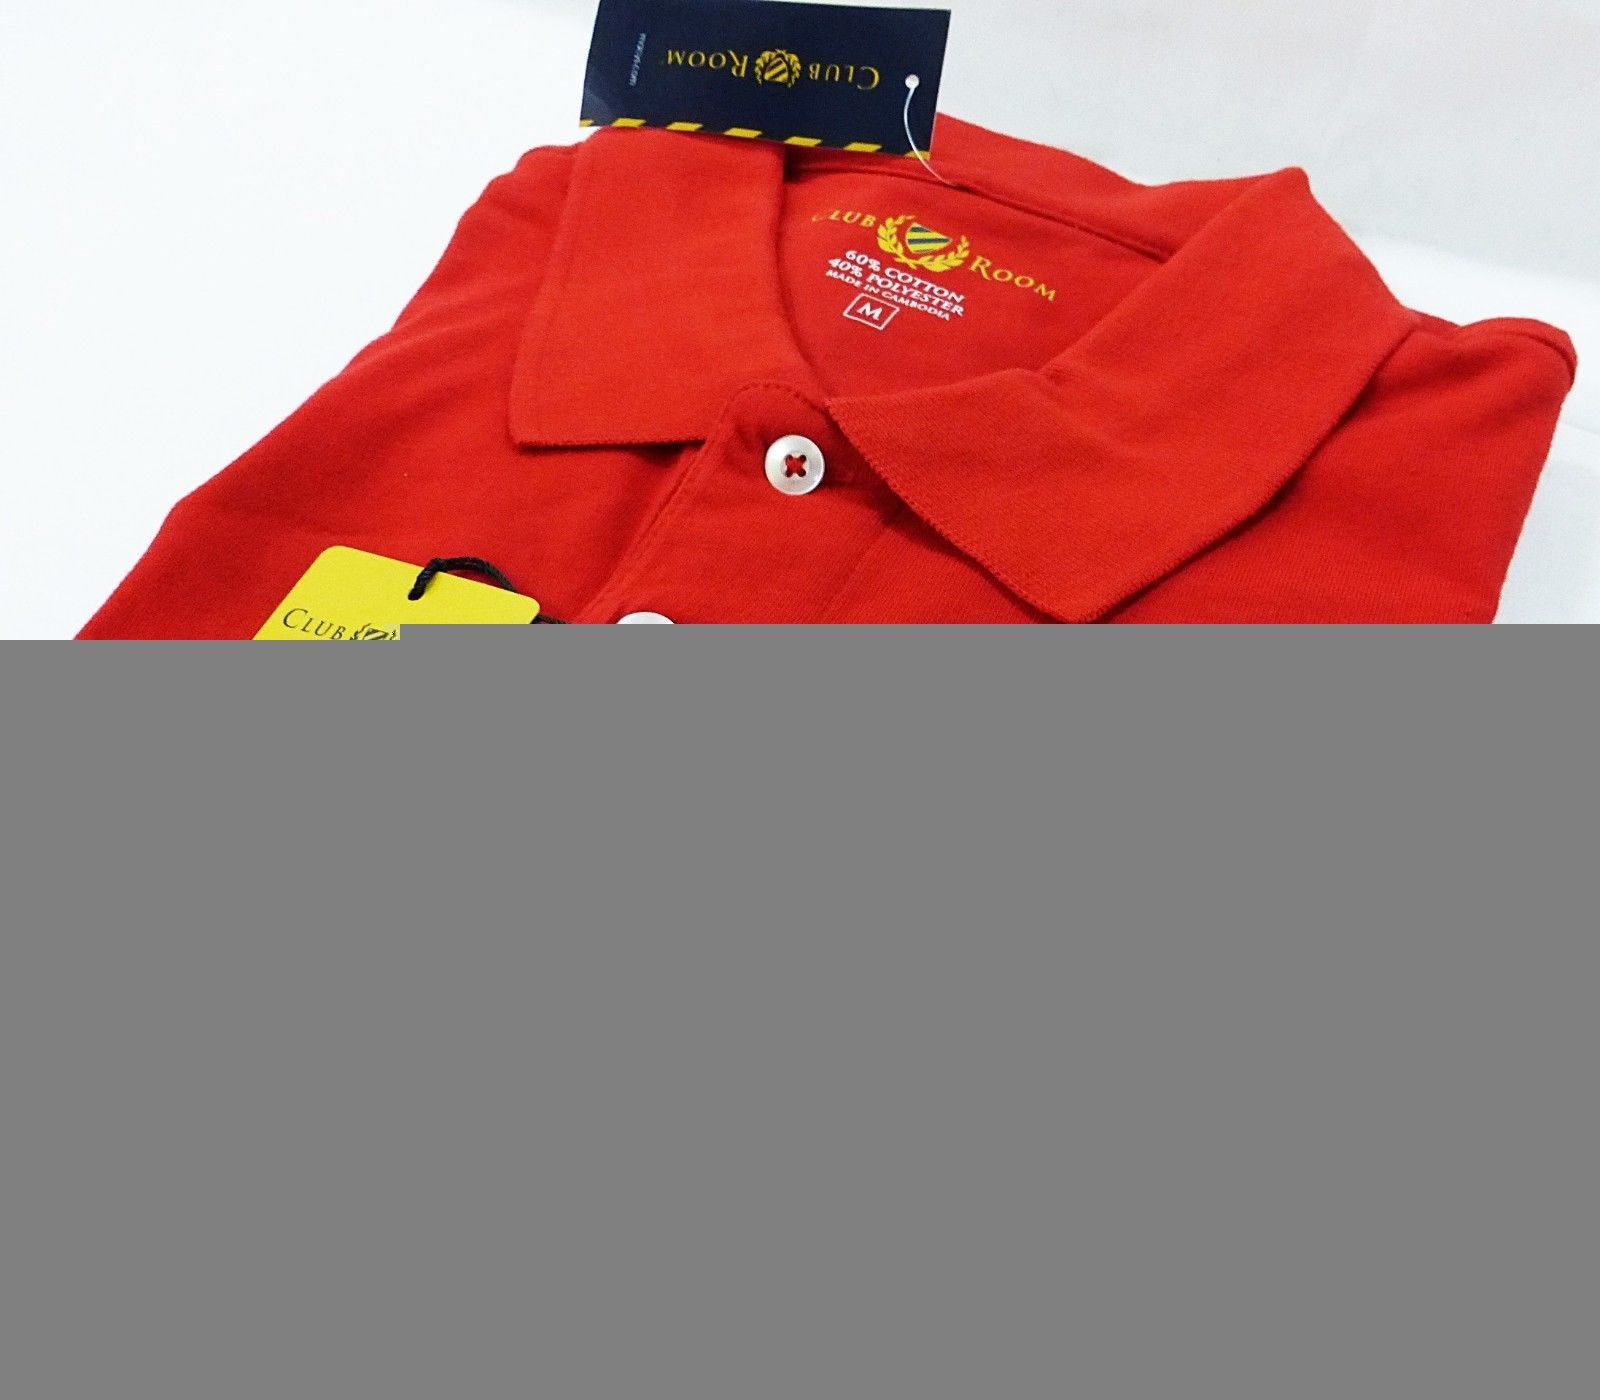 club room men pocket polo performance red size S-L NWT MSRP $39